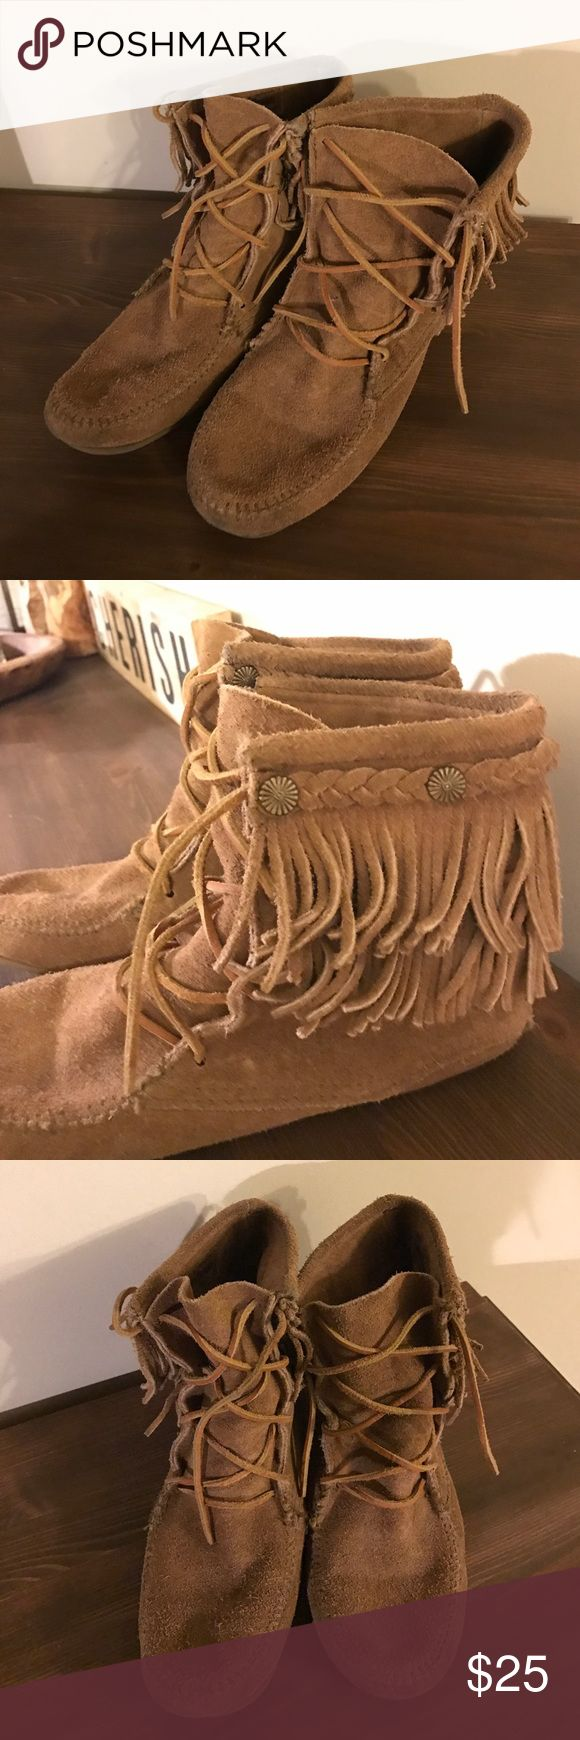 Minnetonka Moccasin Ankle Boots Minnetonka Moccasin Ankle Boots with Fringe Detailing. Good used condition and super comfy! Minnetonka Shoes Ankle Boots & Booties